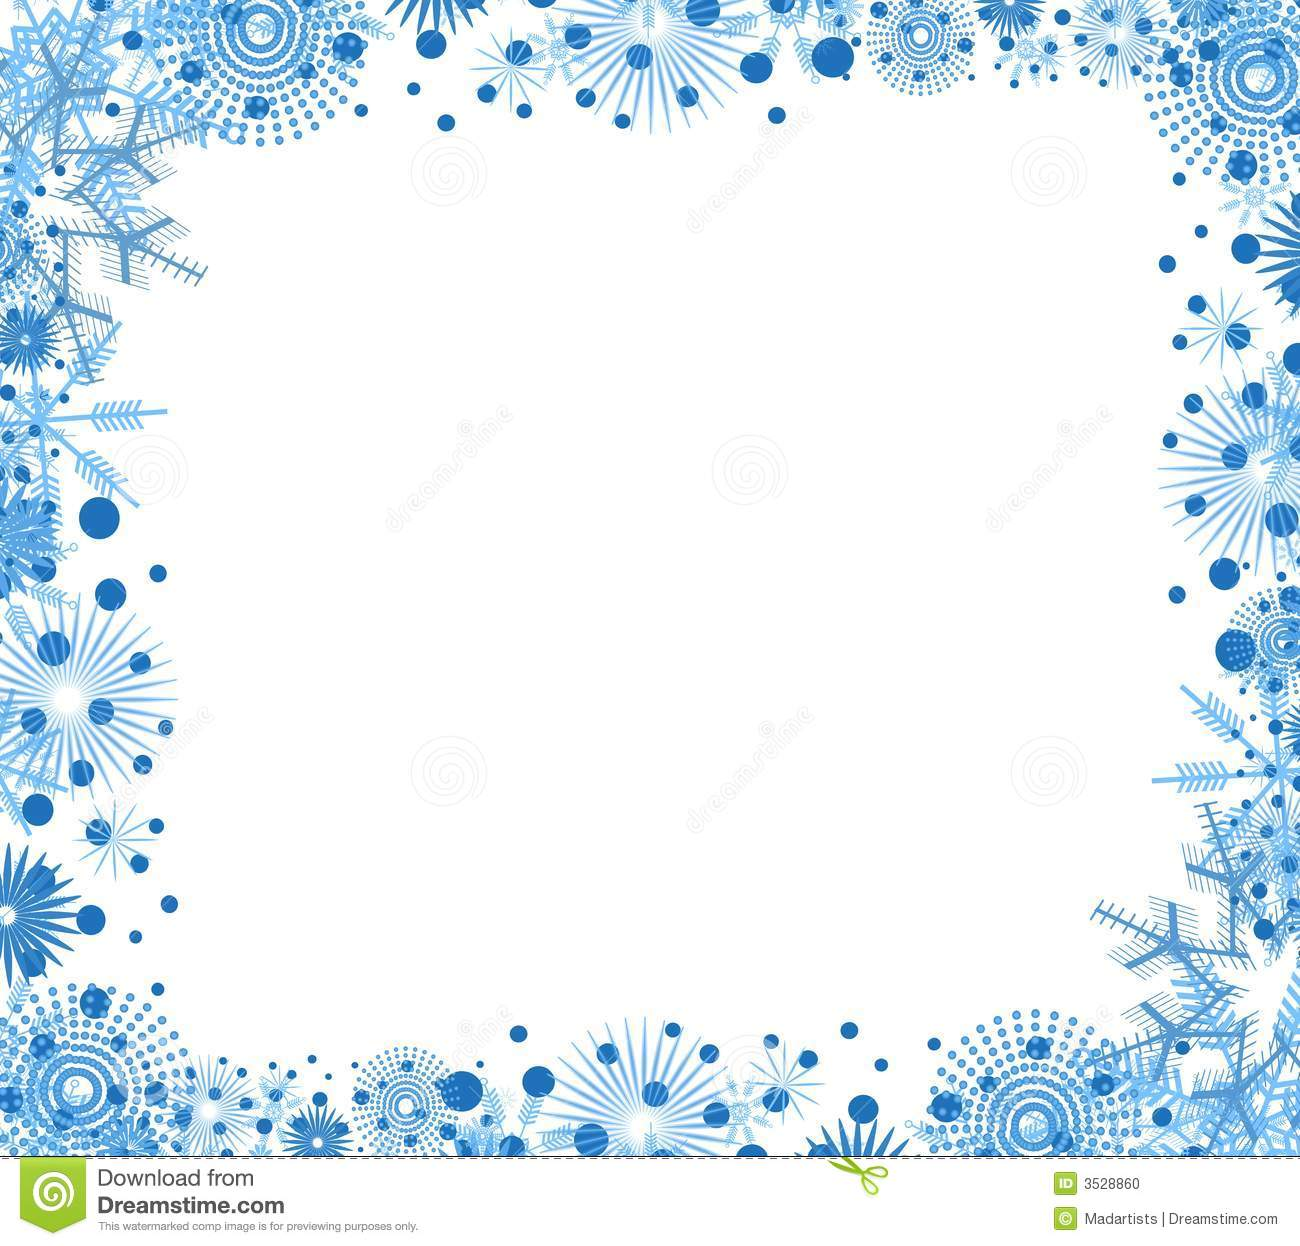 Clip Art Background Border Featuring Decorative Blue Snowflakes